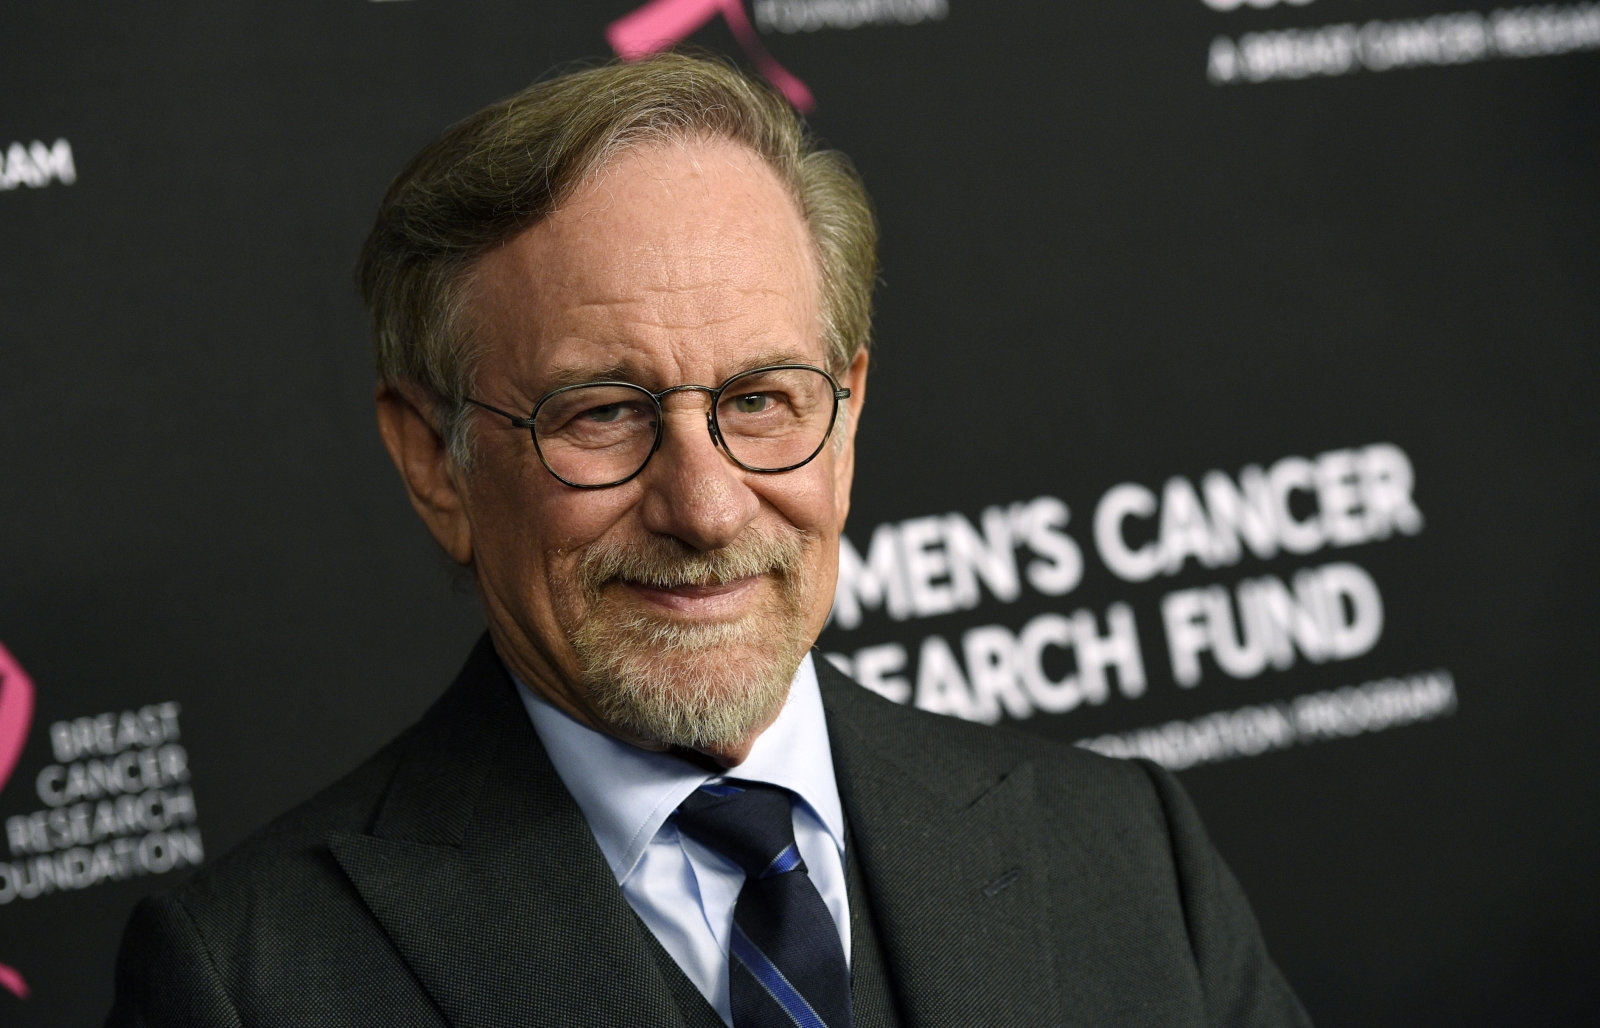 Spielberg to push for new Oscars rules that exclude streaming movies | DeviceDaily.com